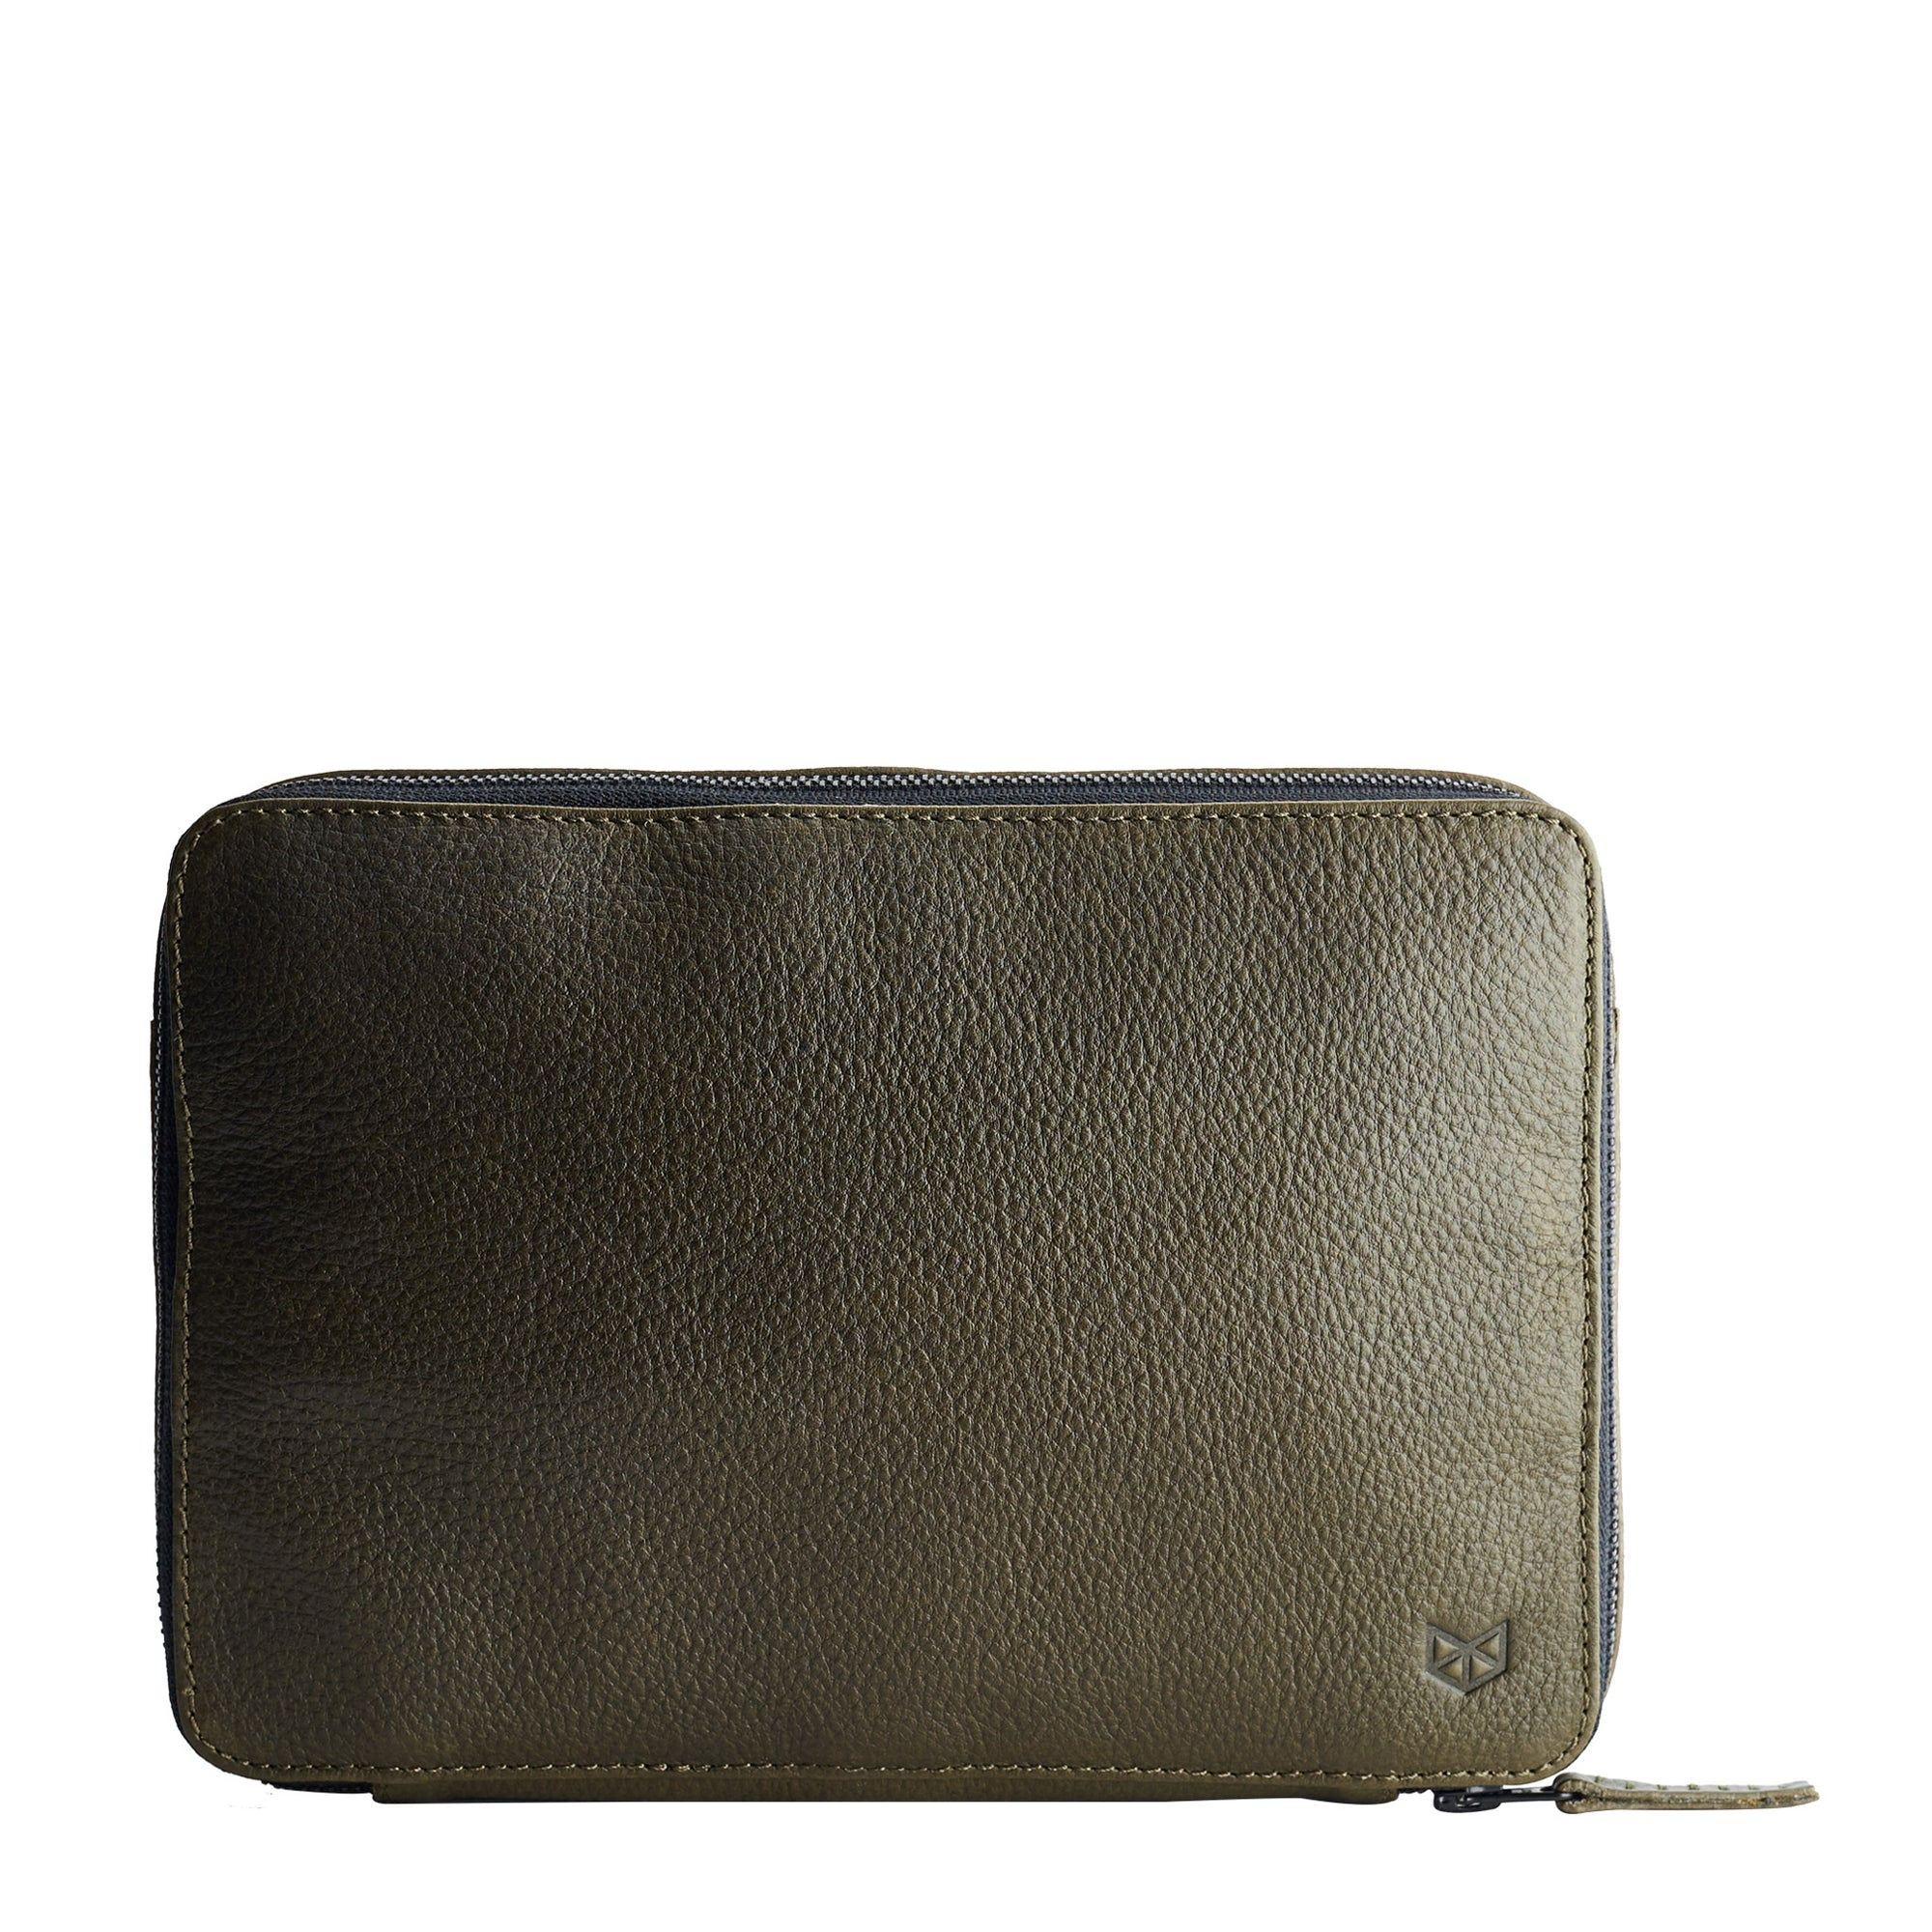 Green leather gadget bag, tech dopp kit, electronic organizer. Fits iPad Pro with Apple pencil.